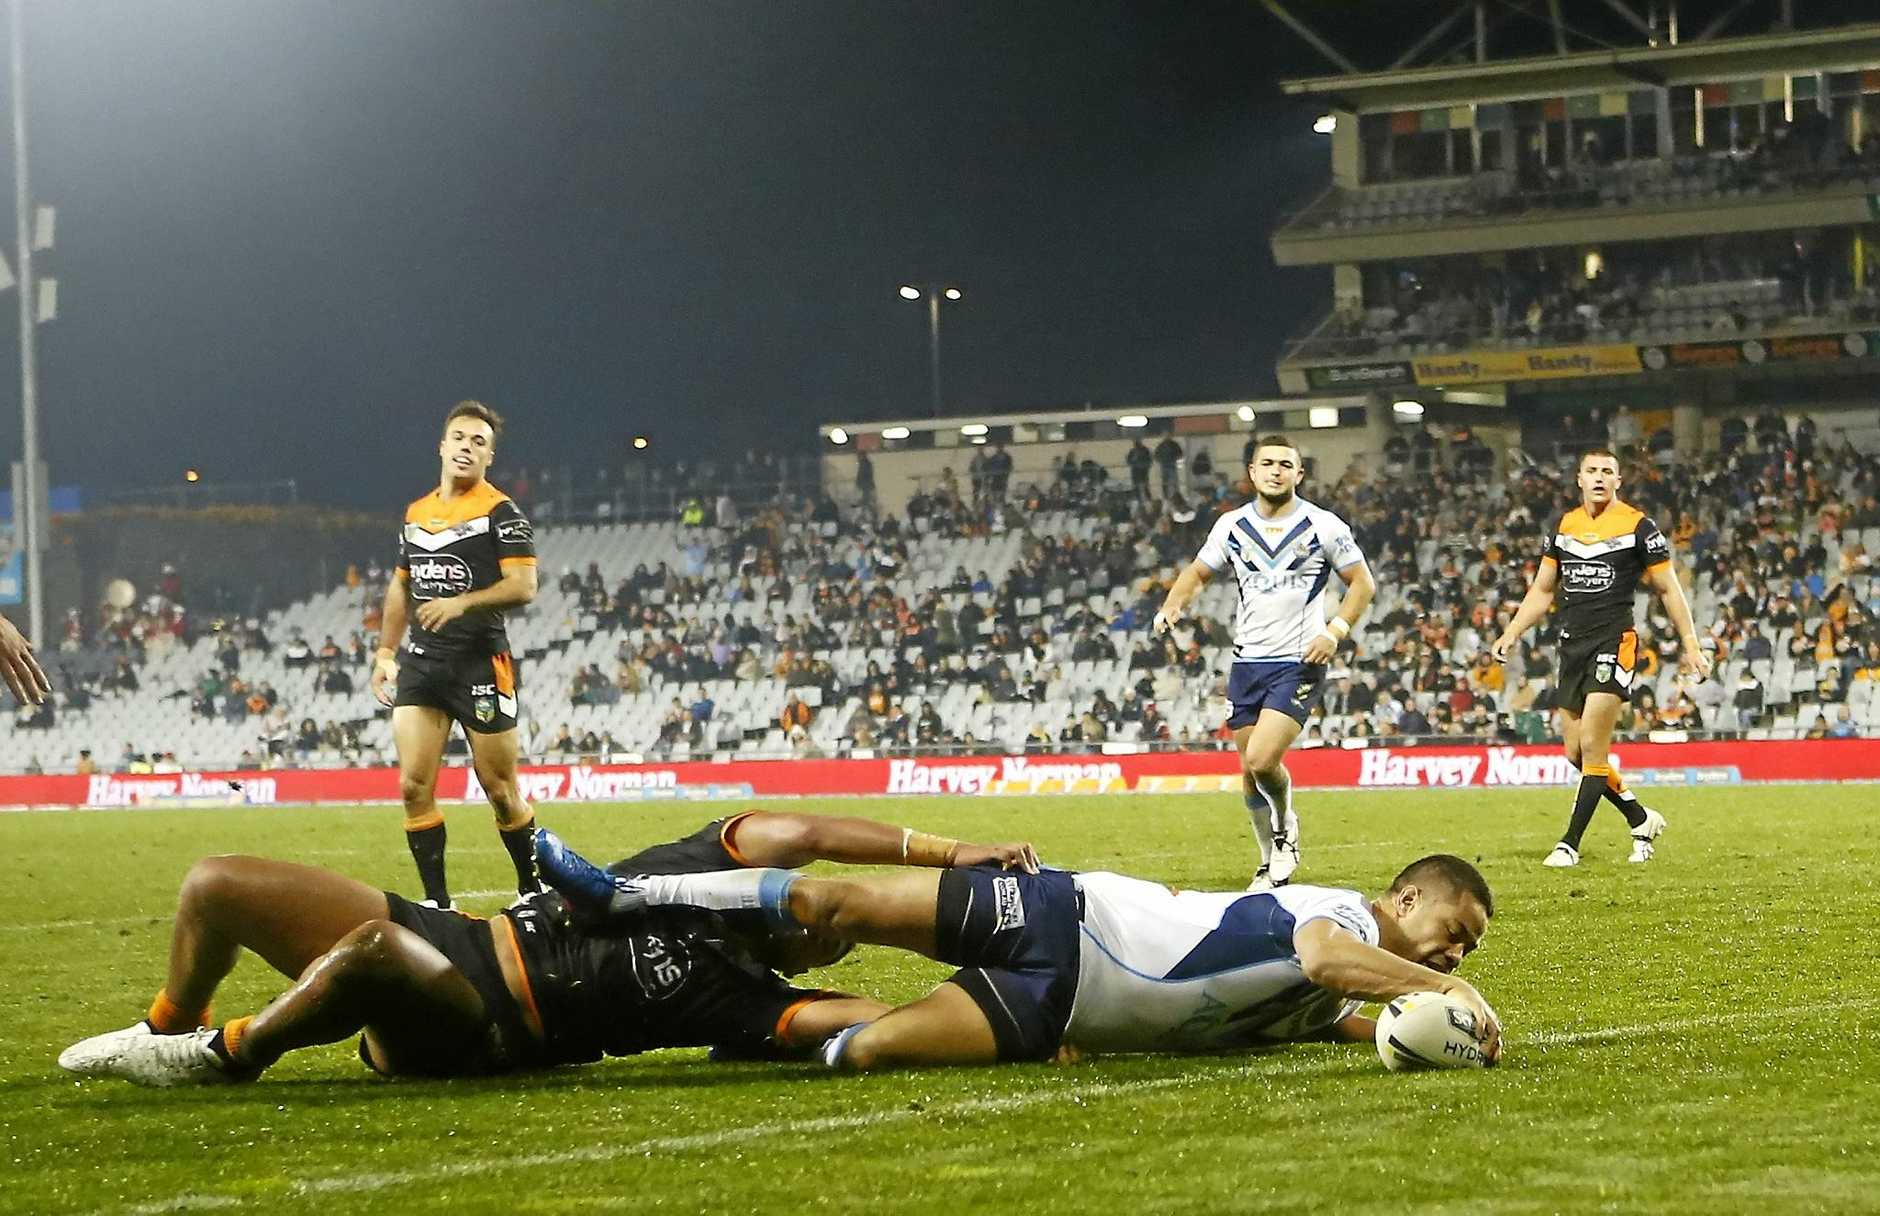 Jarryd Hayne of the Titans scores a try against the Tigers.